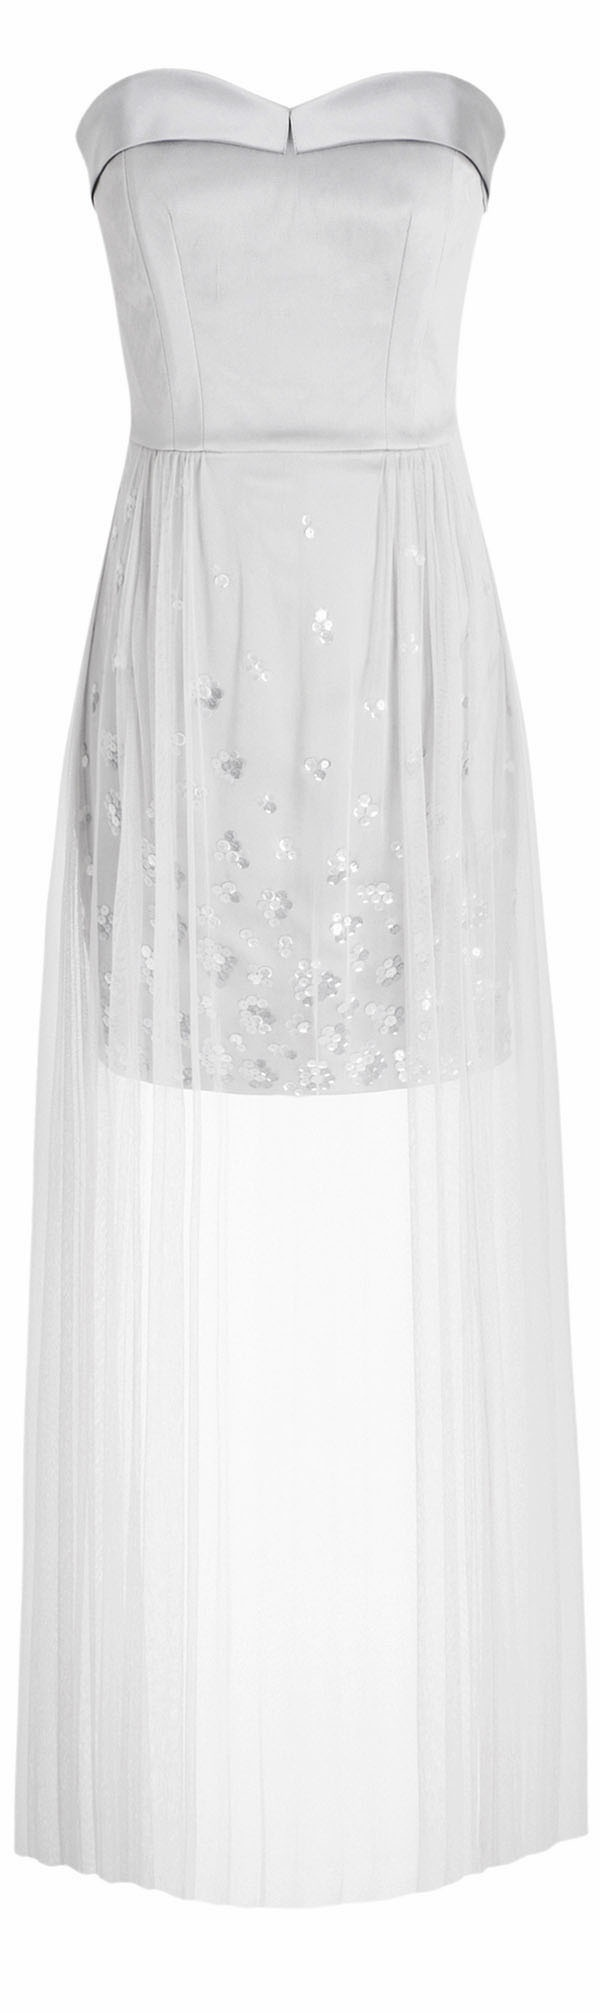 hippie wedding dress - photo debenhams prshots - click here to read about hippie wedding dresses at: http://boomerinas.com/2013/04/are-hippie-wedding-dresses-the-same-as-bohemian-wedding-dresses/